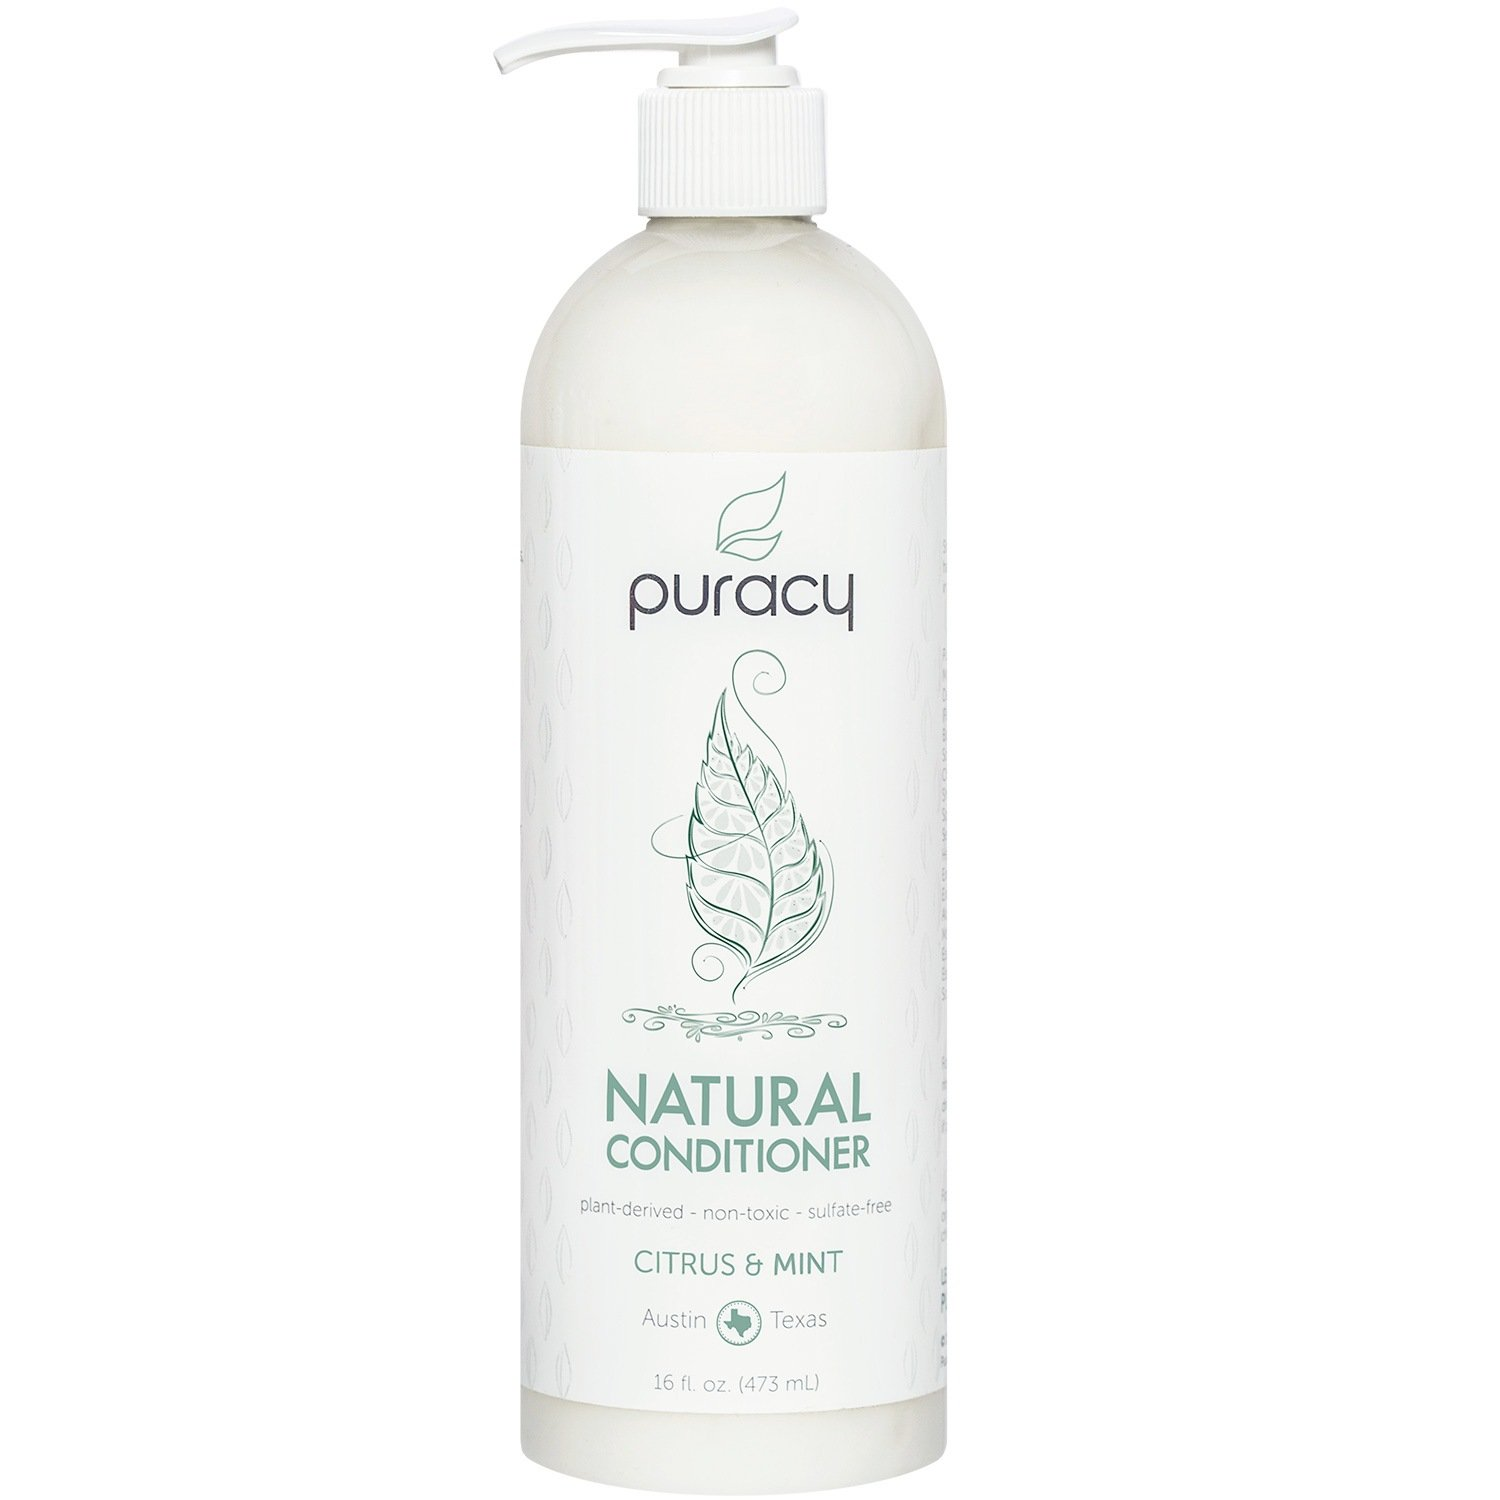 Puracy Natural Conditioner Sulfate-Free, Non-Toxic Plant Polymers for Soft, Silky Hair and Detangling, Citrus & Mint, 473 mL Pump Bottle PNC16-1